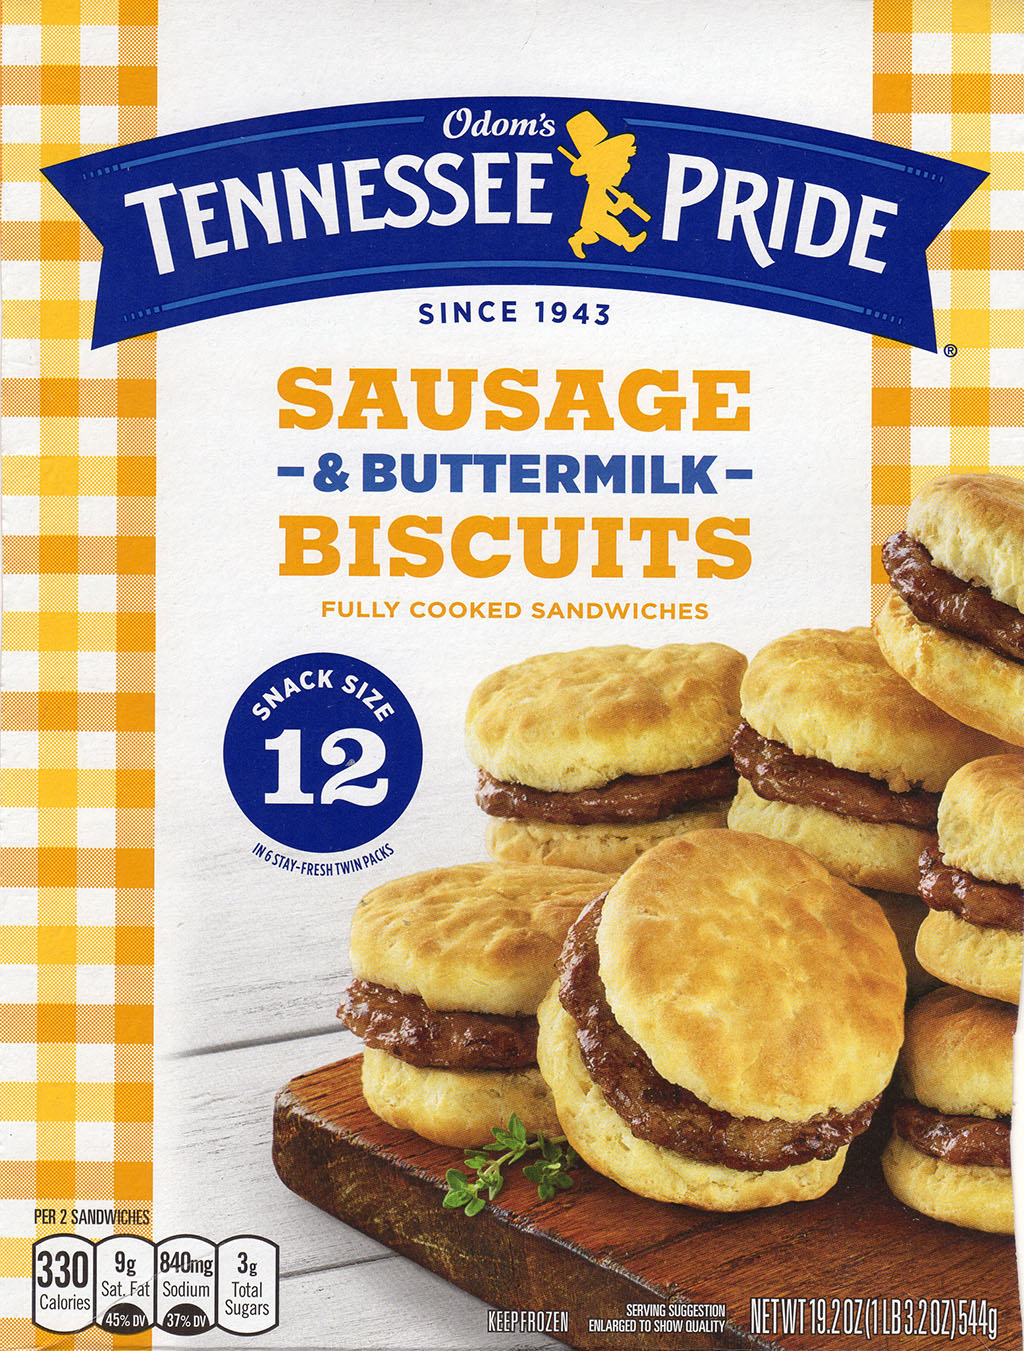 Odom's Tennessee Pride Sausage And Buttermilk Biscuits - more packaging